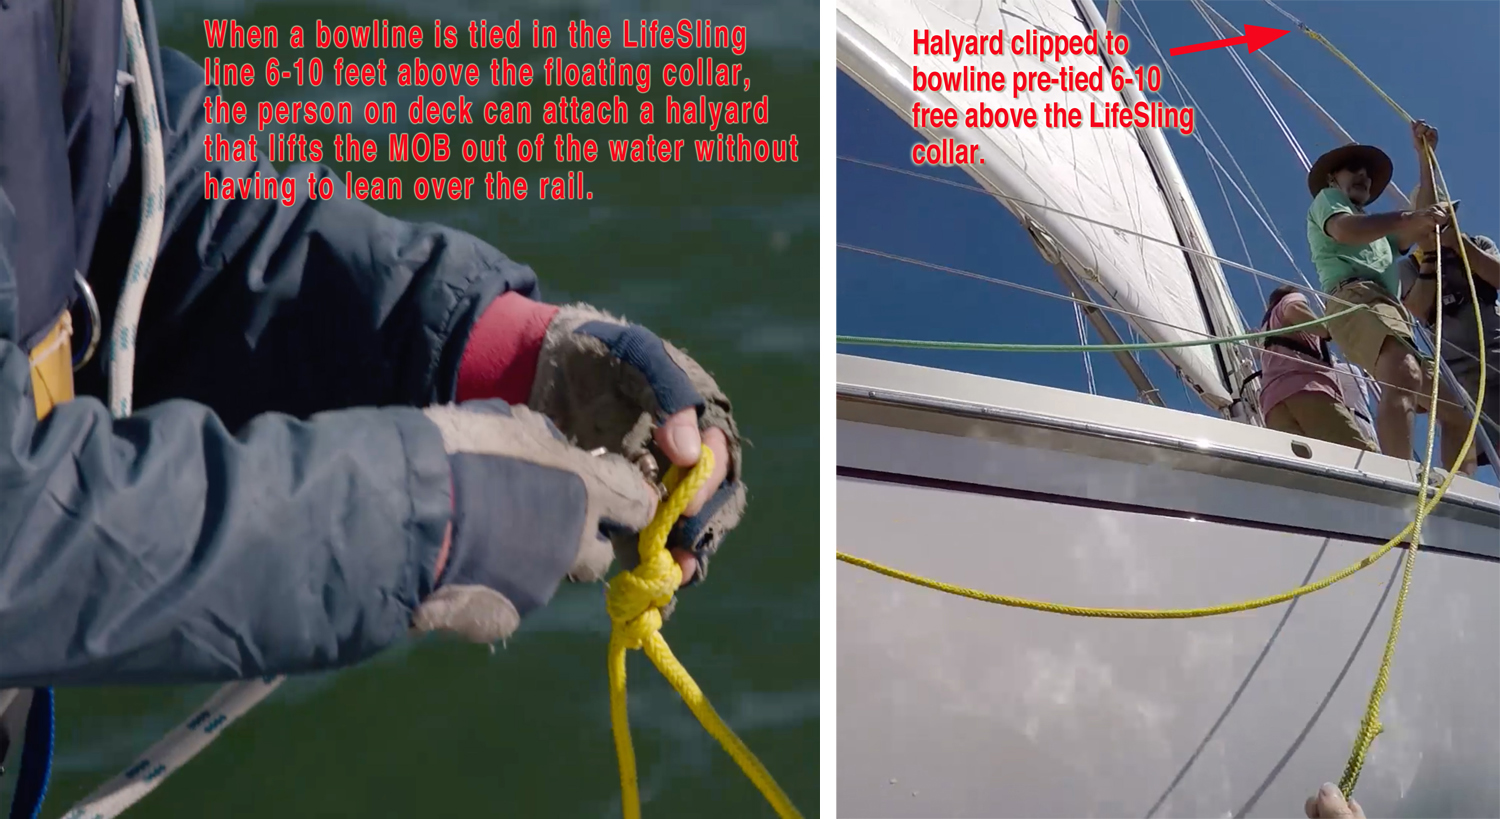 To make it safer to lift a victim from the water with a Lifesling, make sure there is loop tied in the Lifesling line 6-10 feet from the floating collar. This way the person on the deck can attach the halyard to the Lifesling without leaning out over the side of the boat.